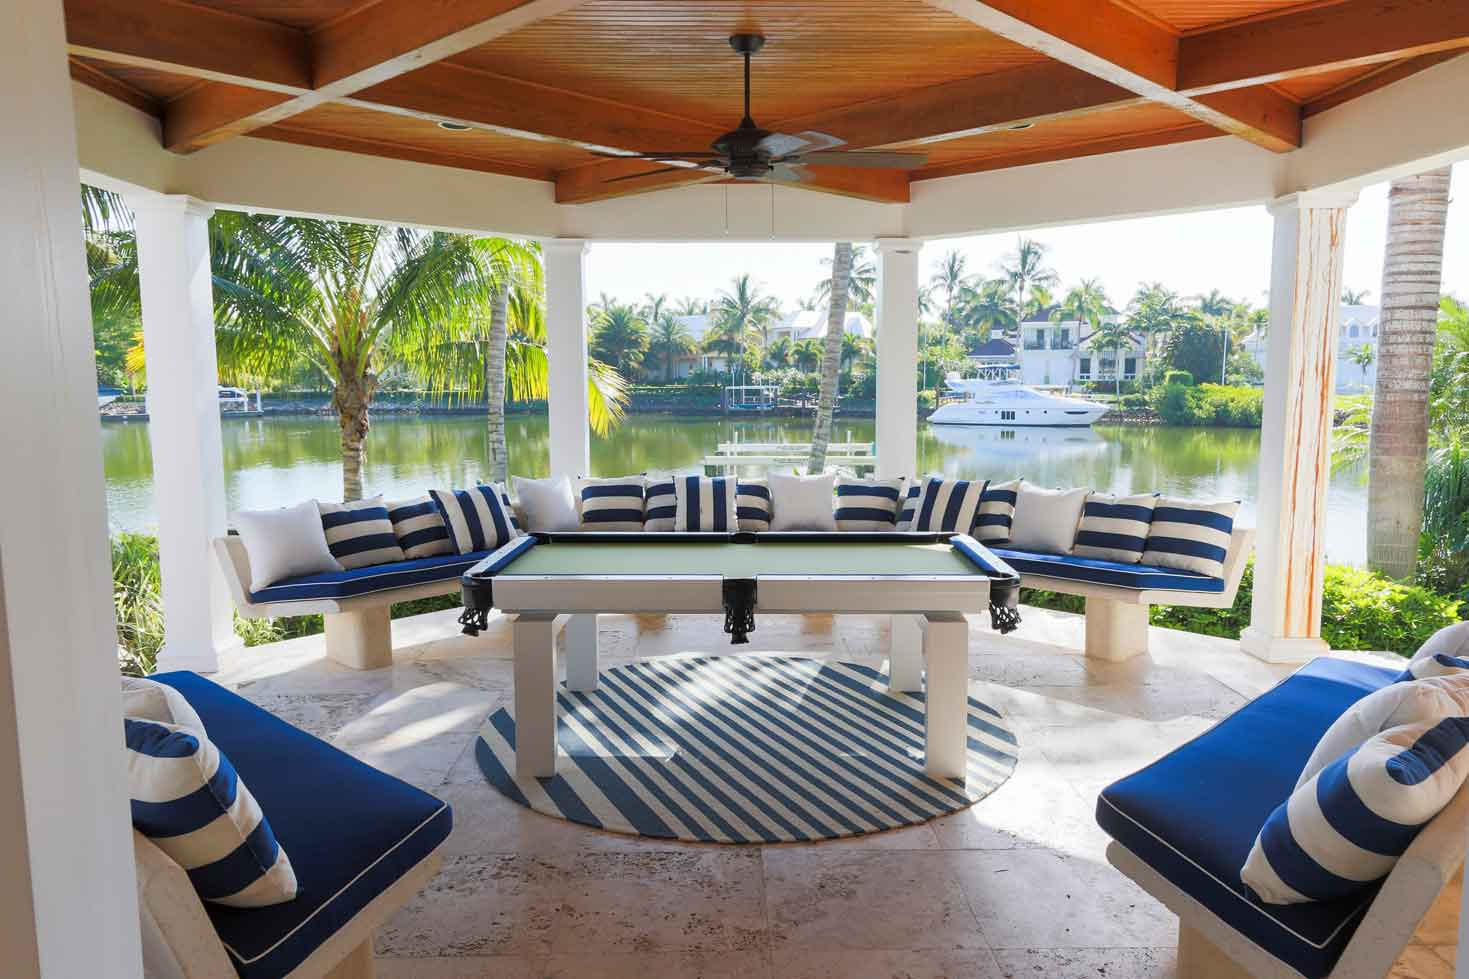 Blue and white Oasis custom outdoor pool table in client's waterfront gazebo in Southwest Florida